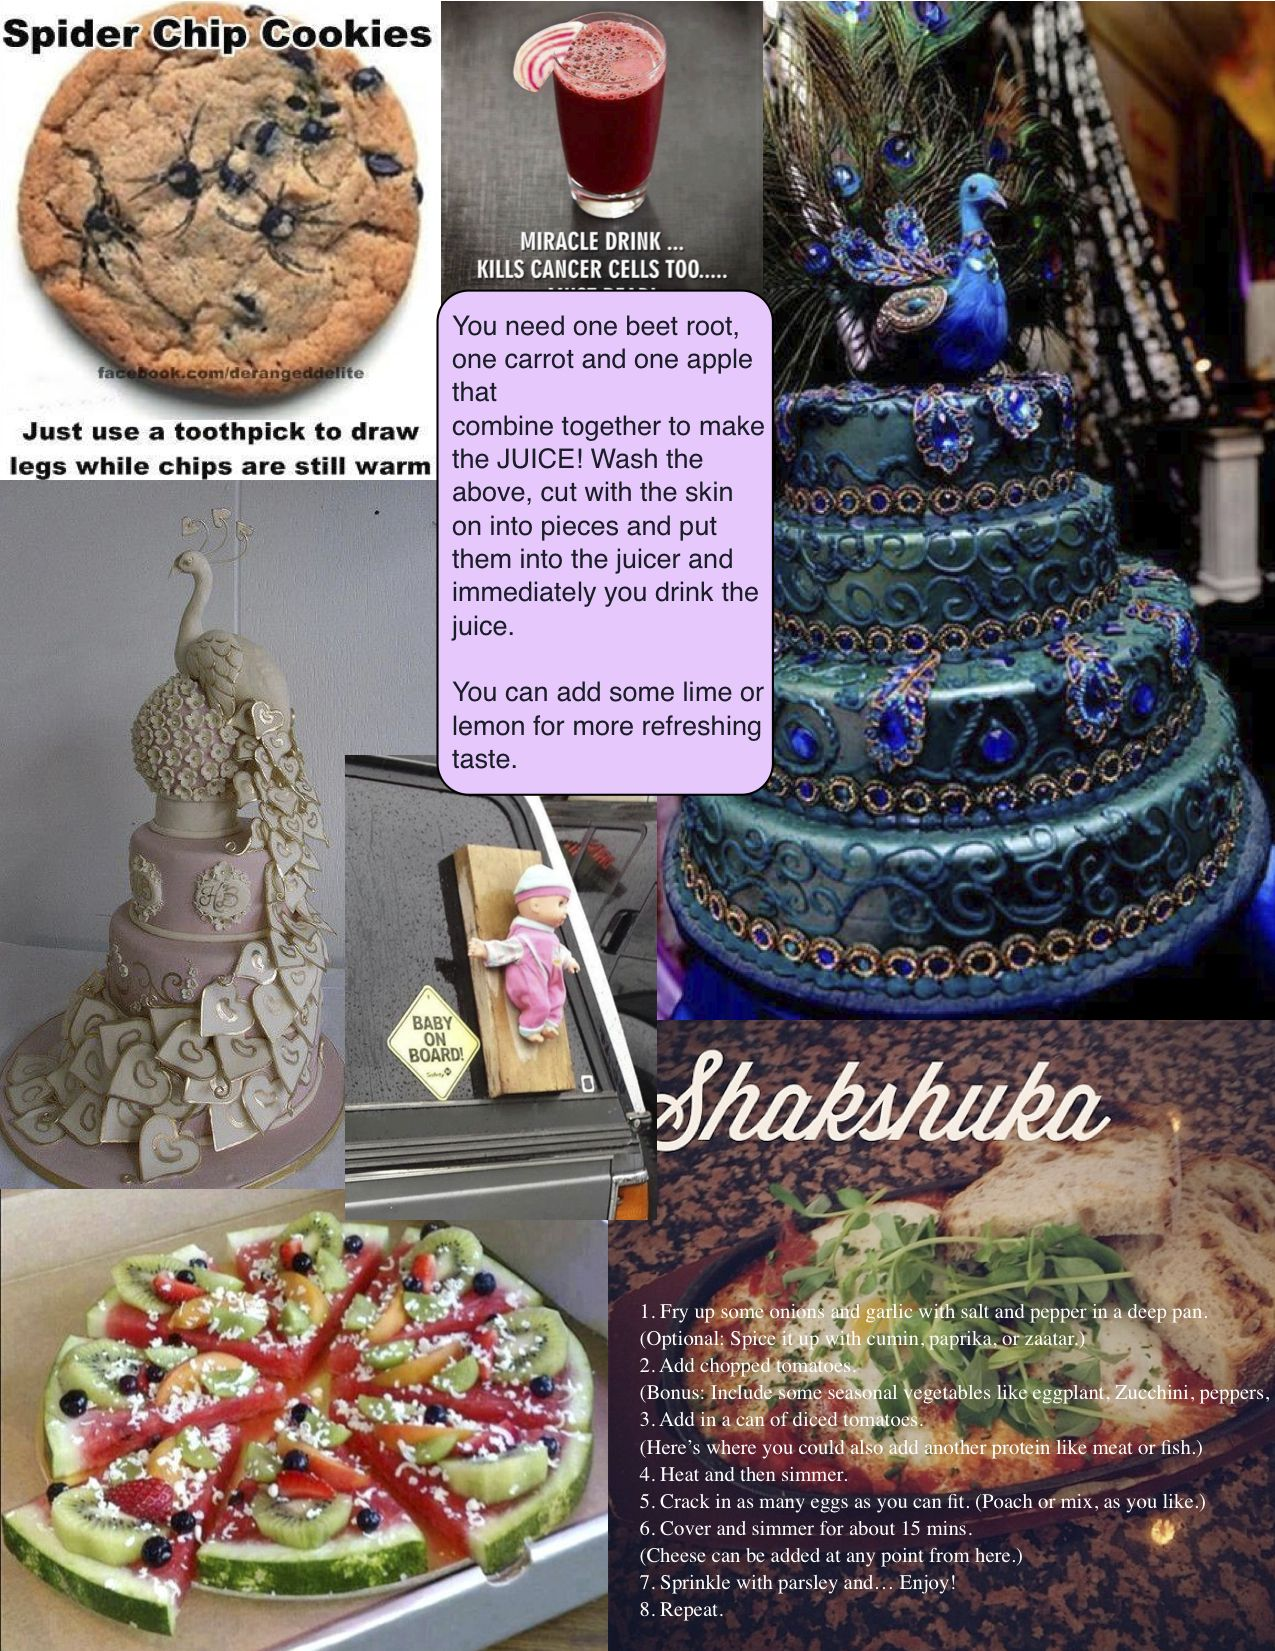 Cakes, spider cookies and more food